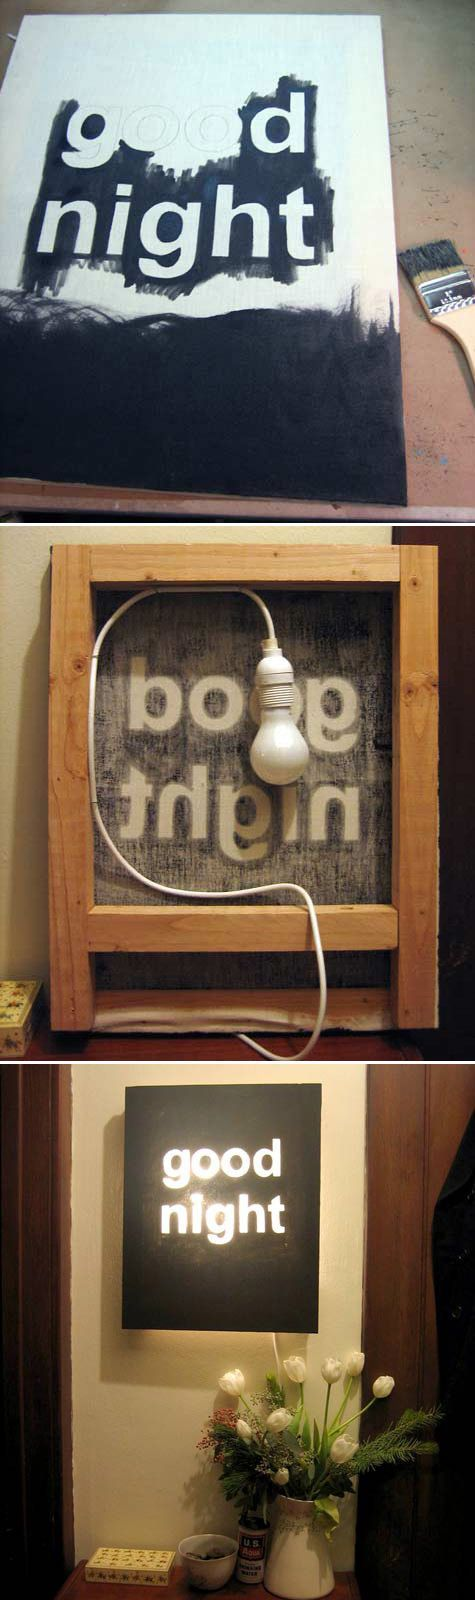 DIY Night Light!! I totally love this idea